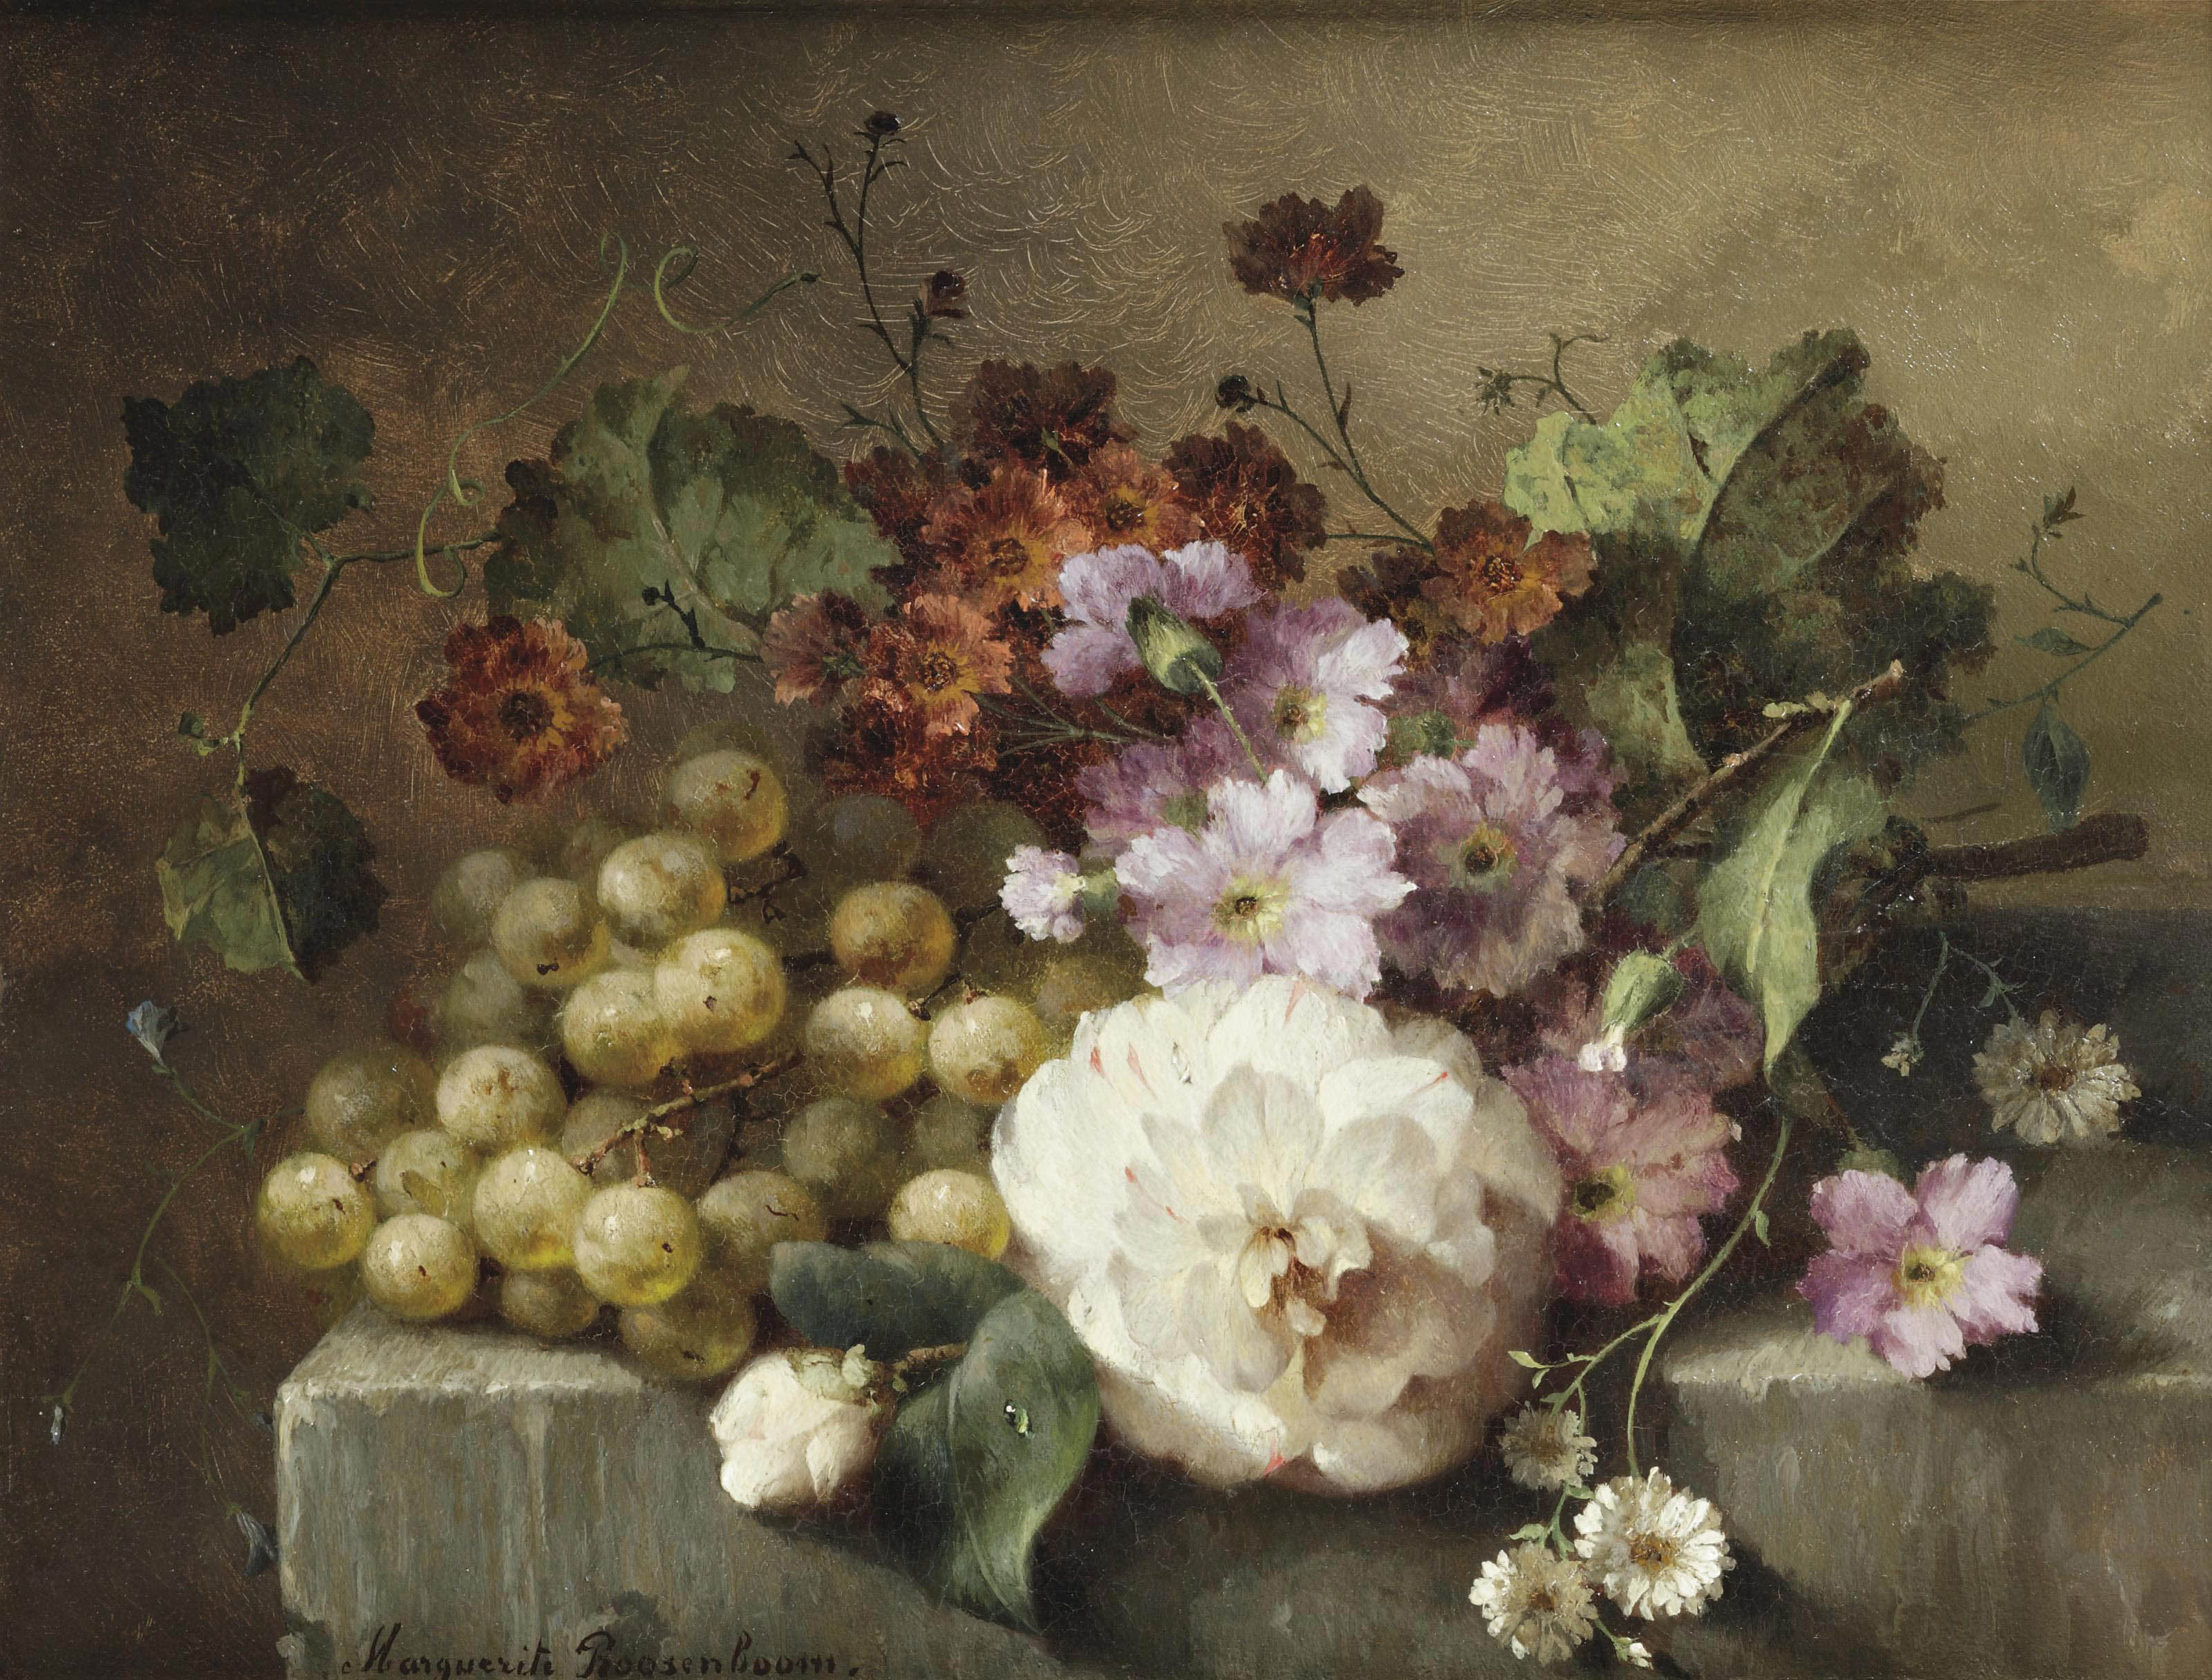 A camellia, carnations, grapes and other flowers on a marble ledge